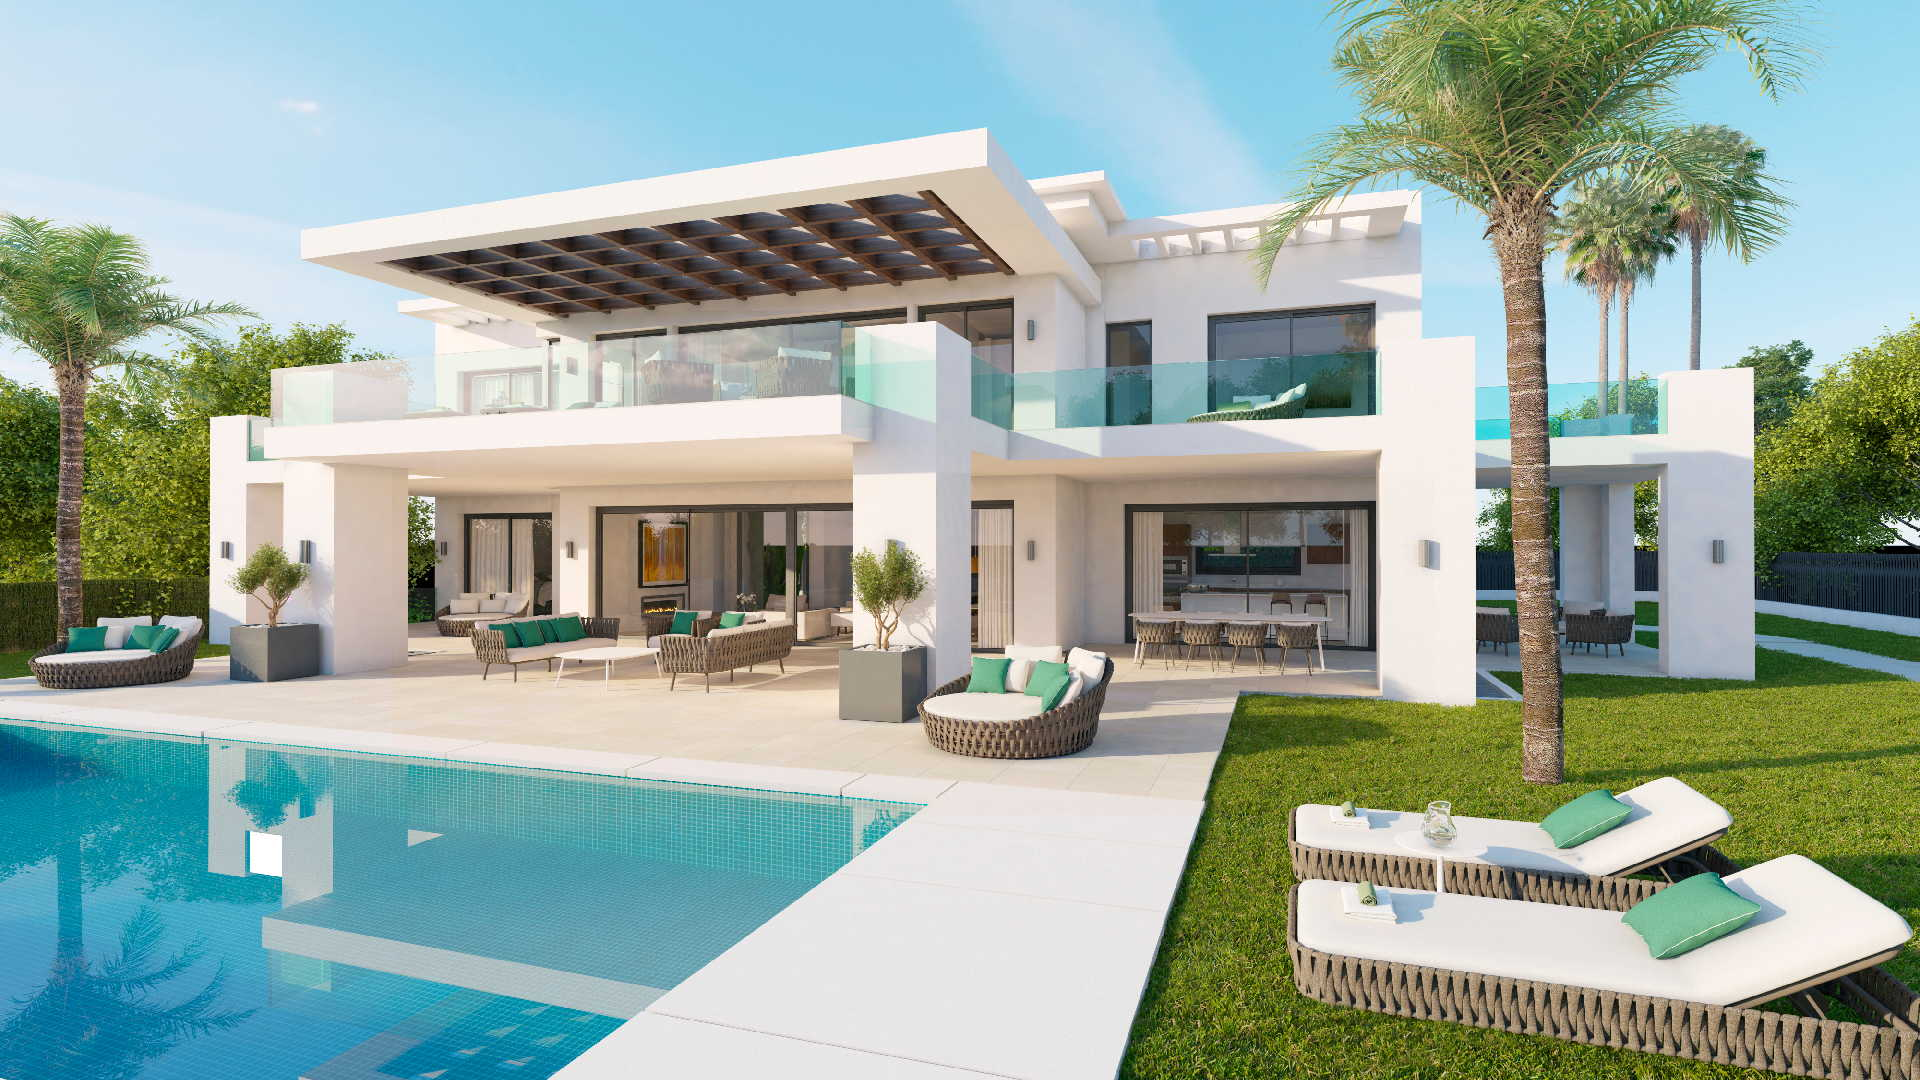 New villa in los olivos nueva andalucia marbella for sale for Villa moderne design